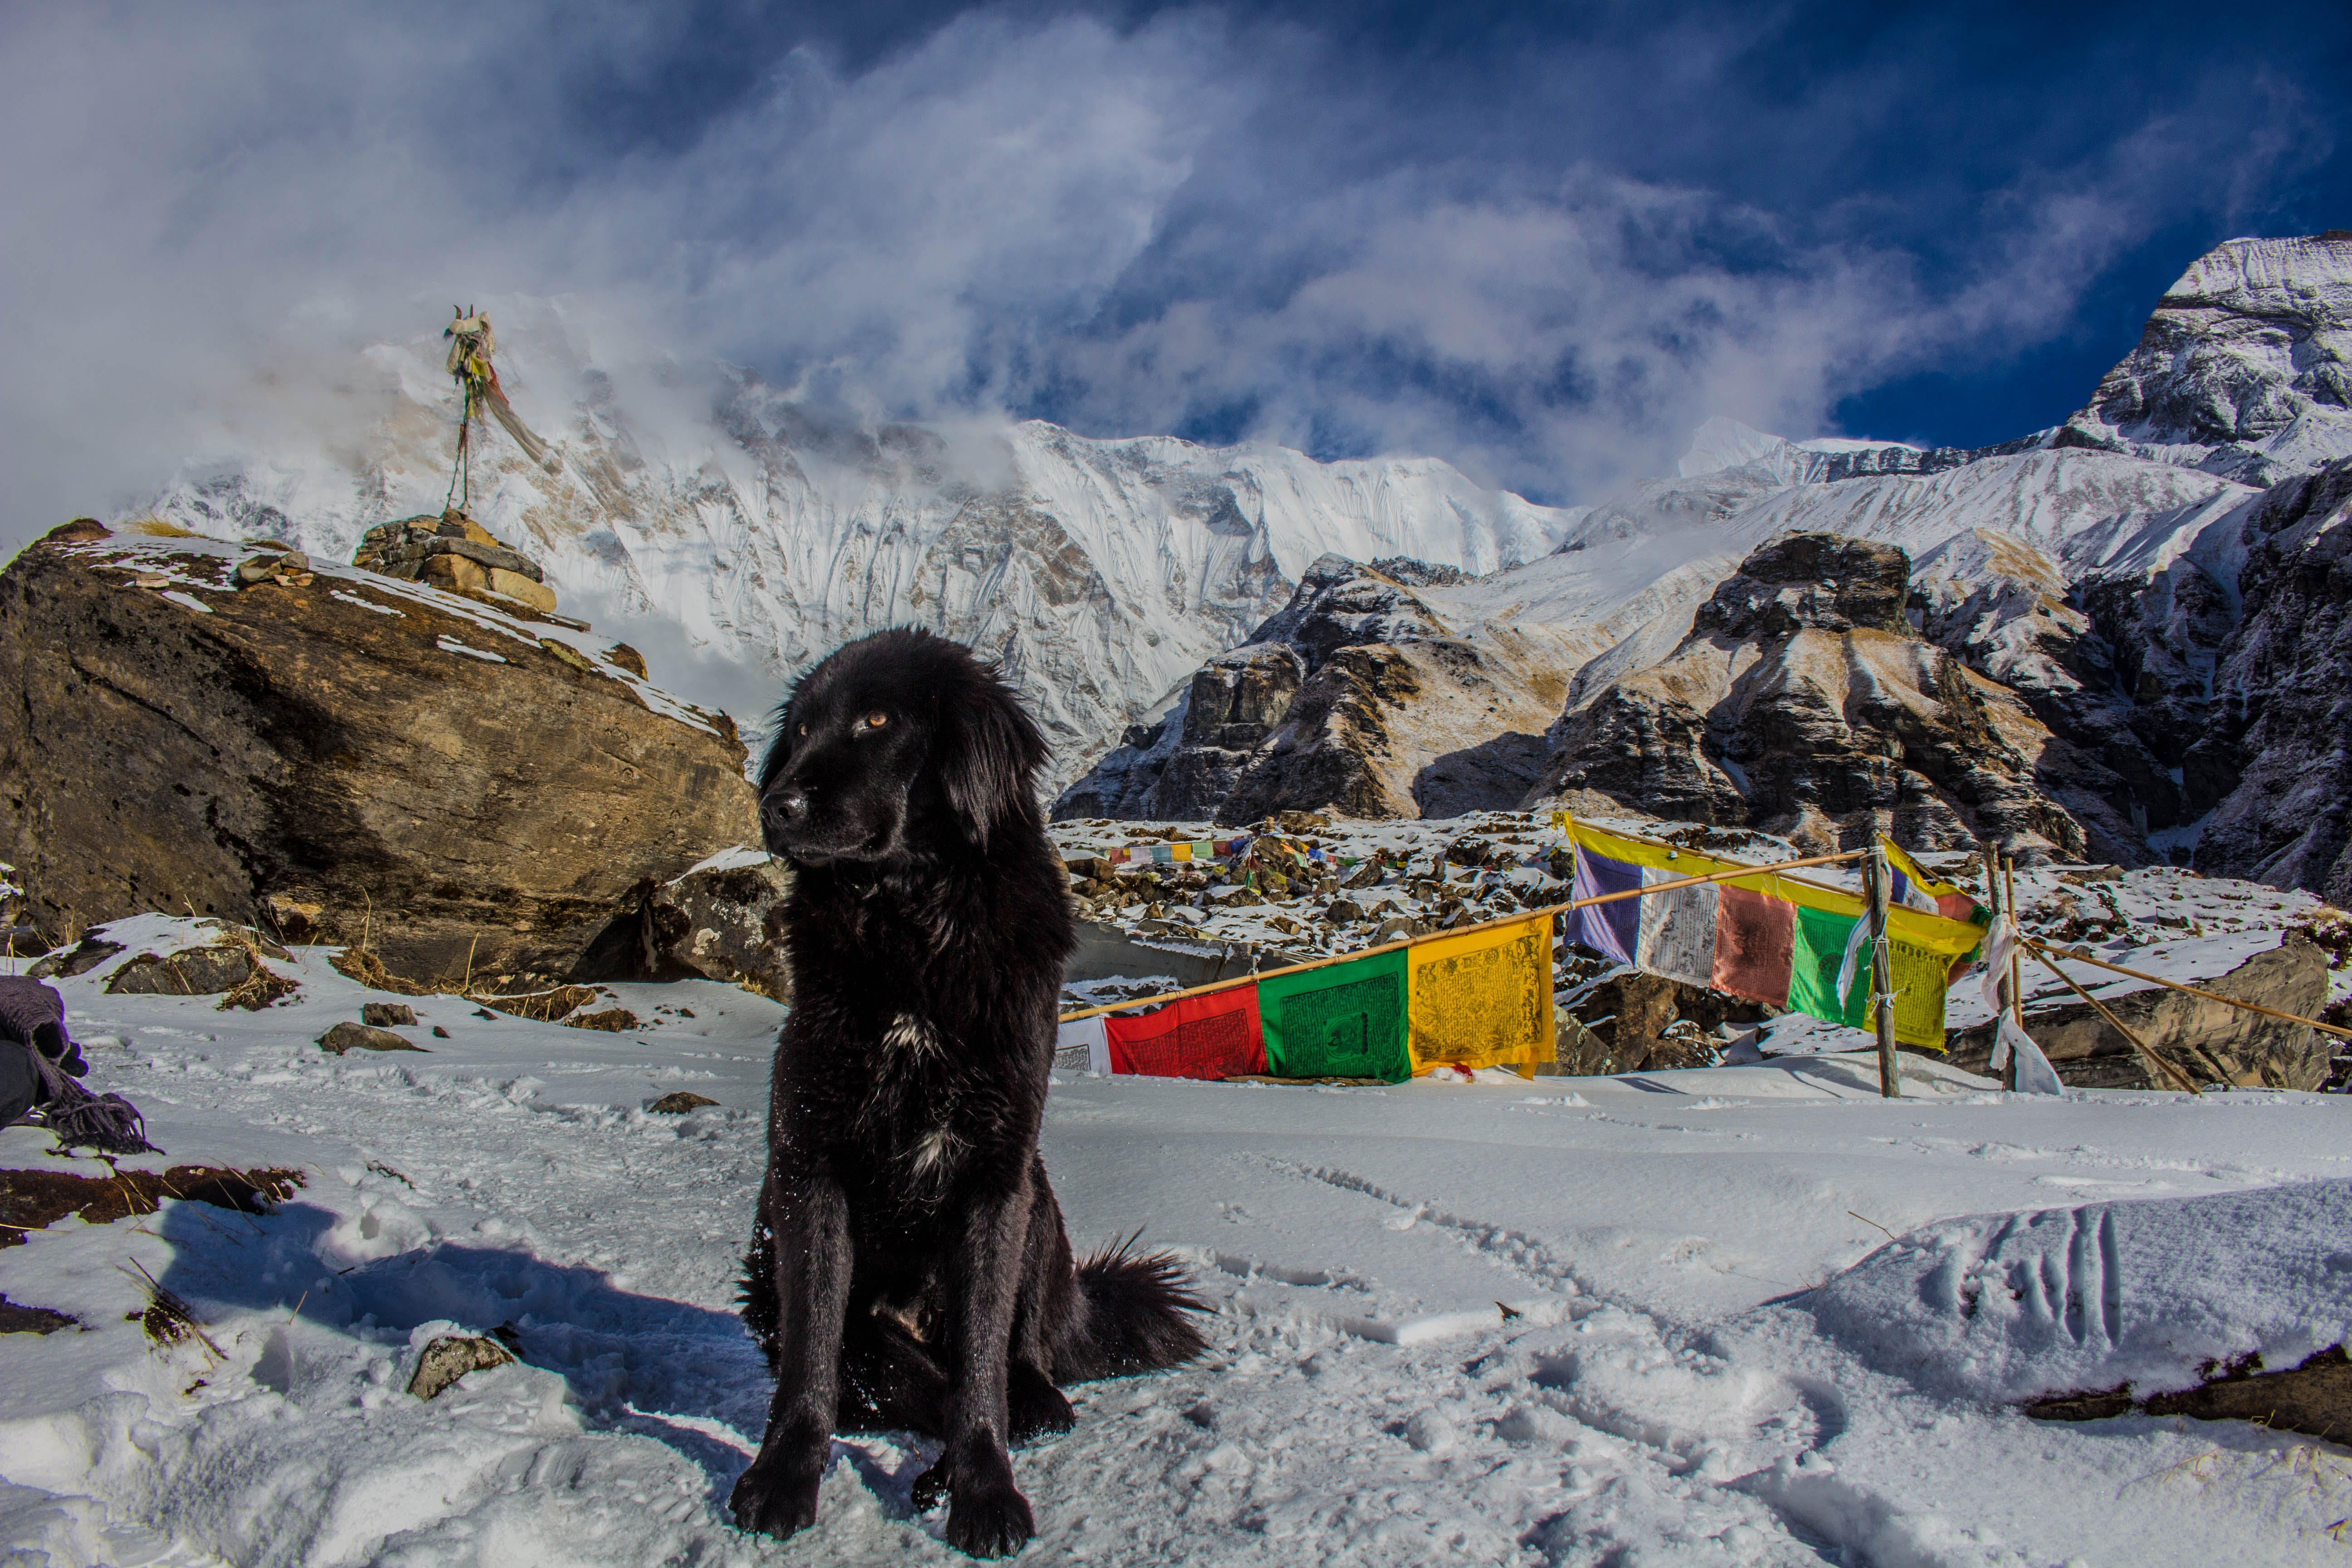 Black Dog on Snowy Mountain